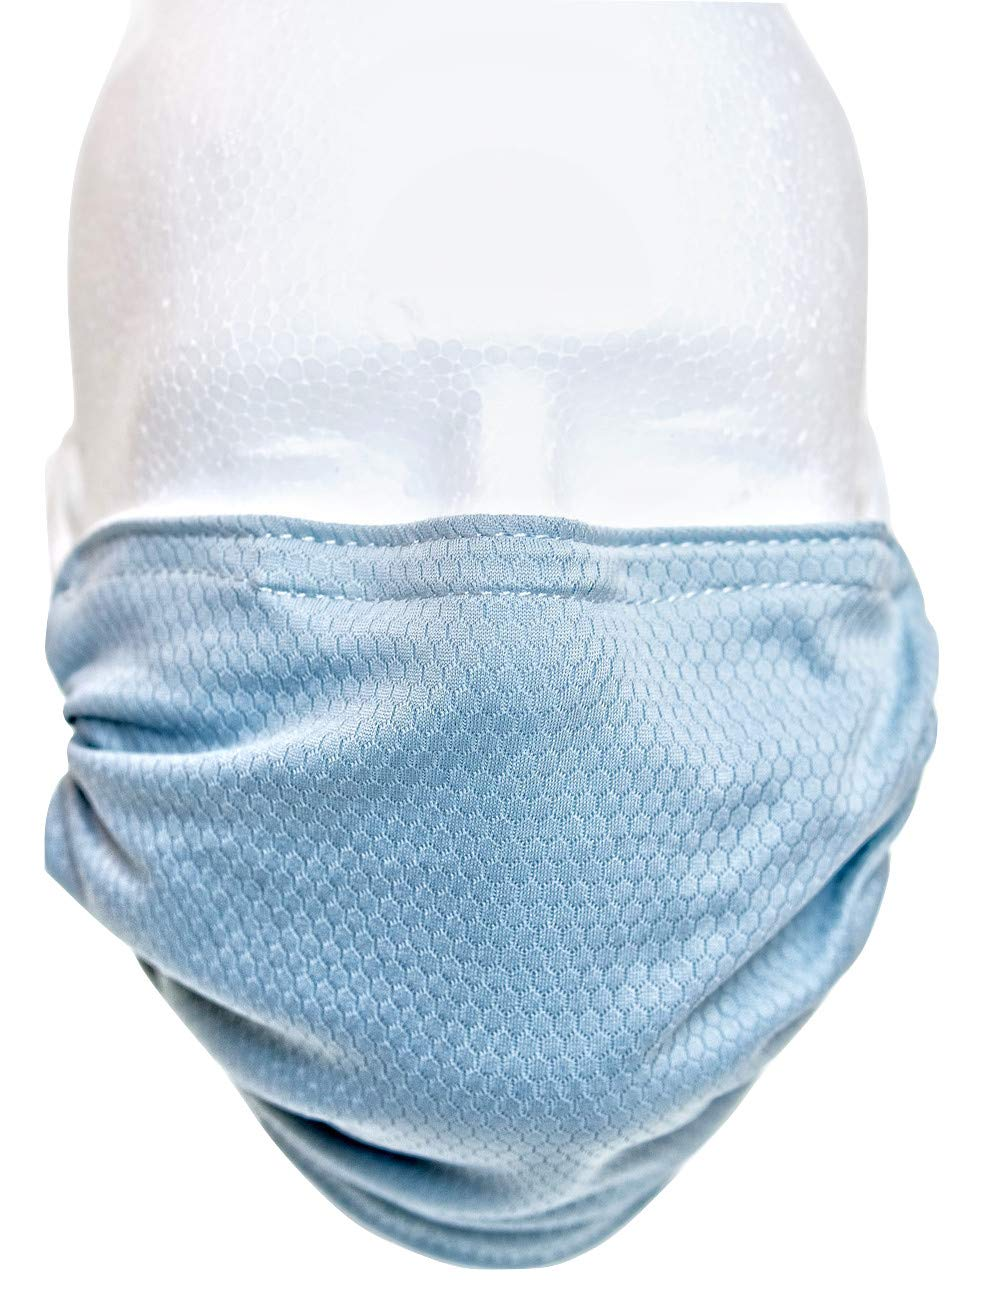 BioBoost Washable Adjustable Antimicrobial Dust Pollen Reusable Surgical Mask (Grey)